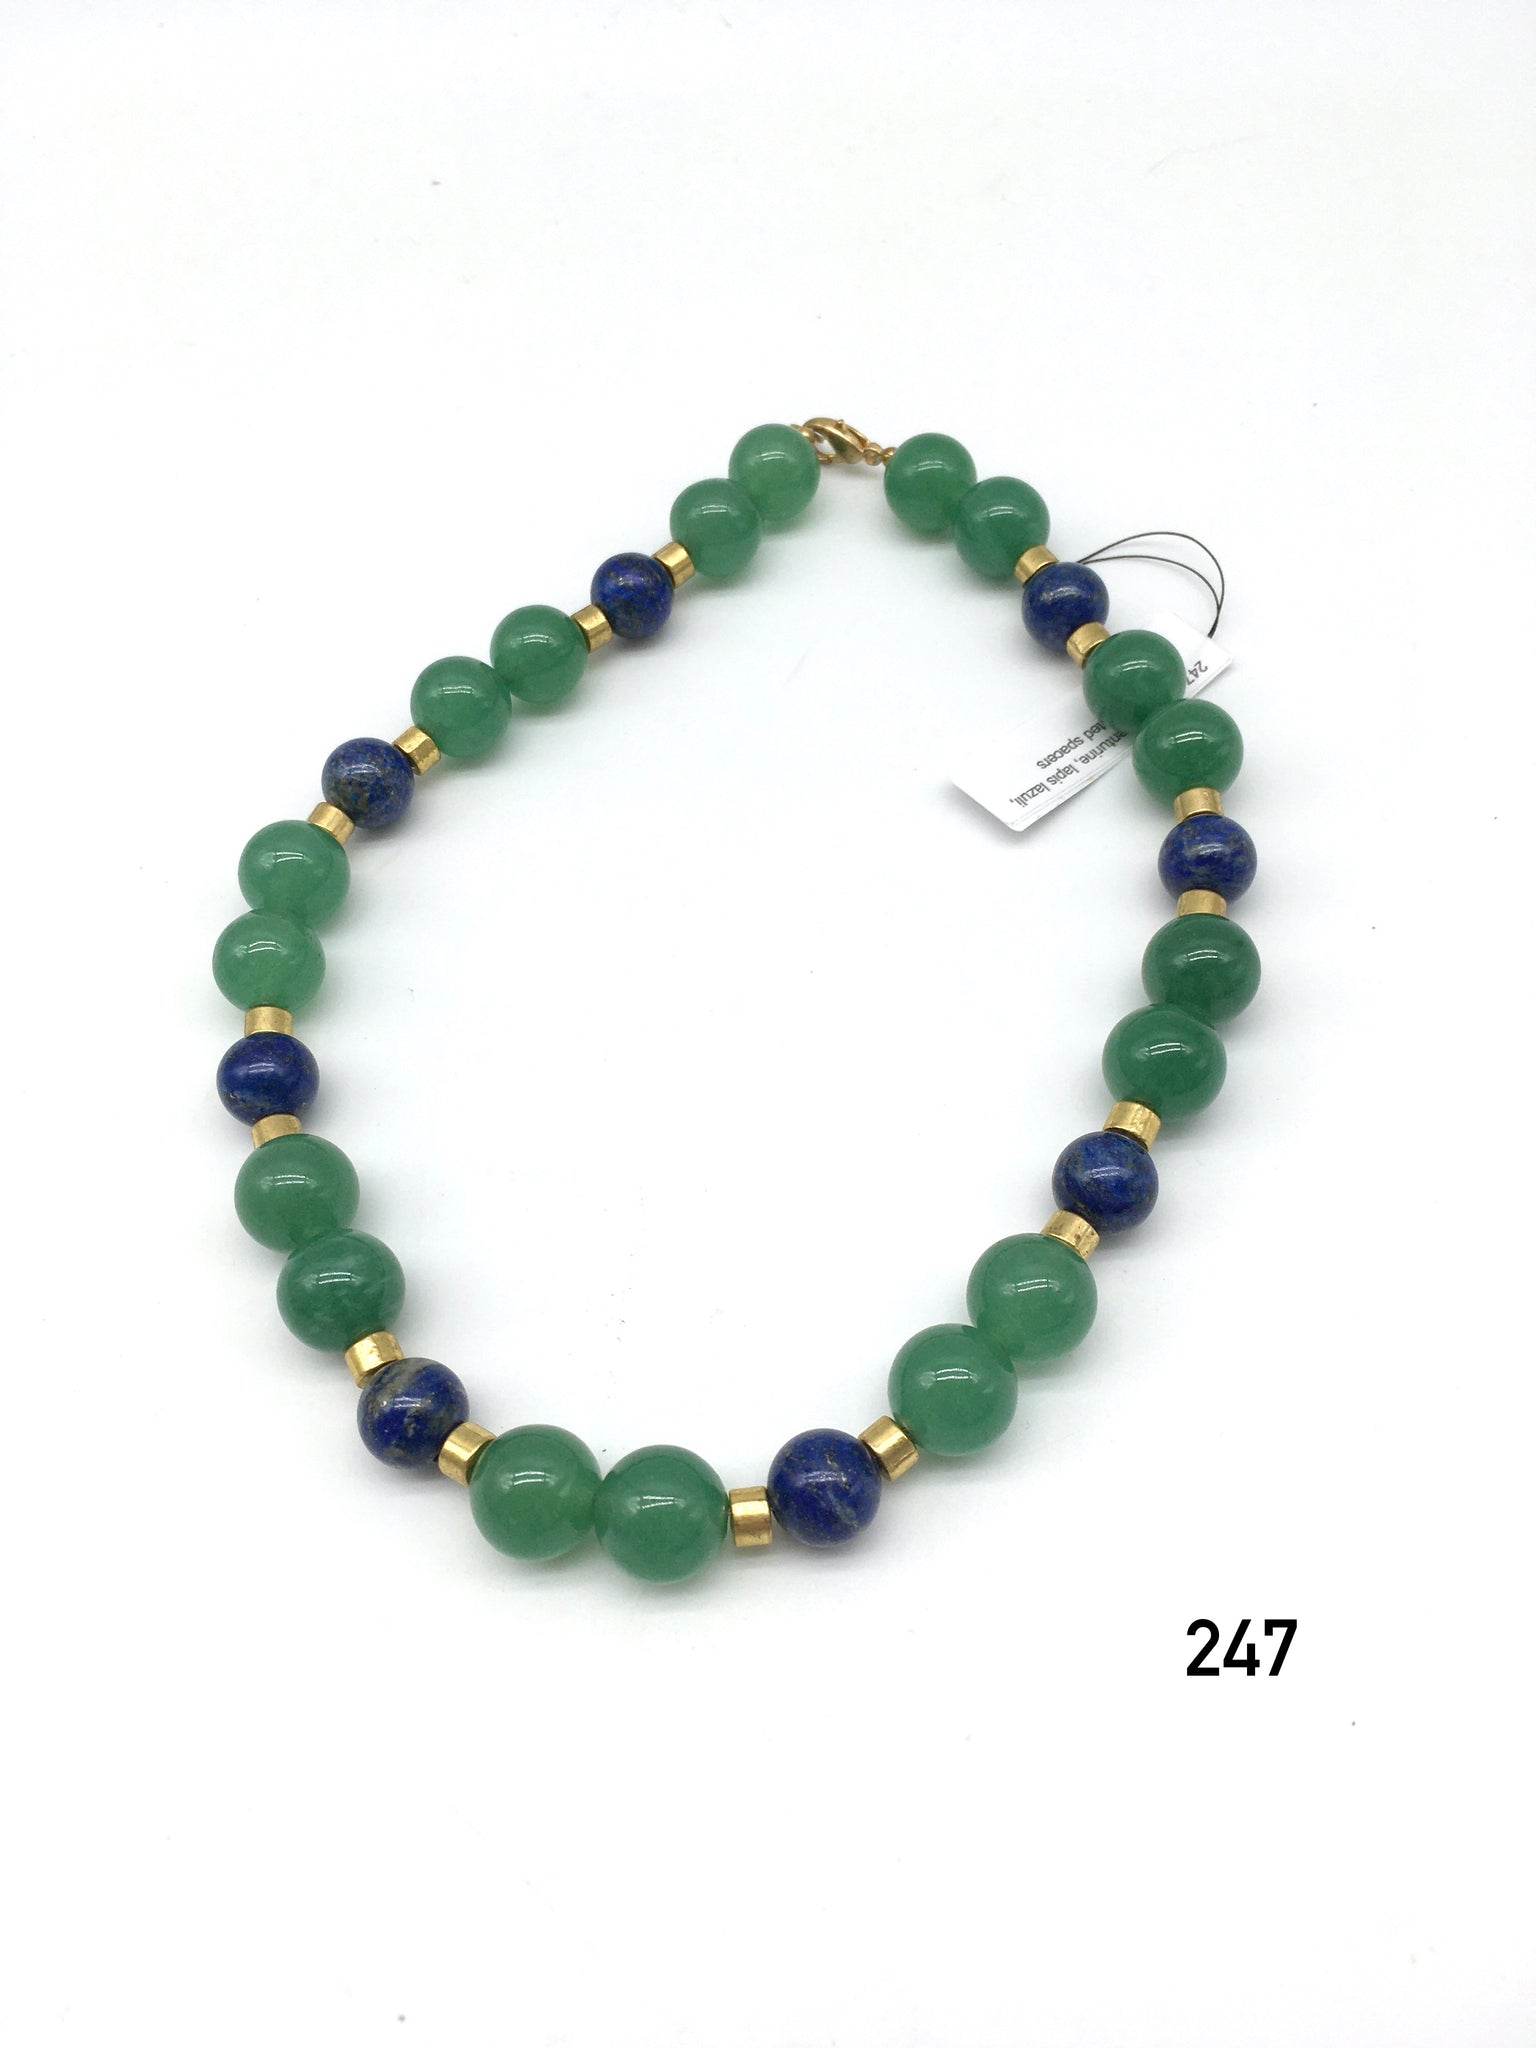 Green Aventurine Lapis Lazuili Necklace